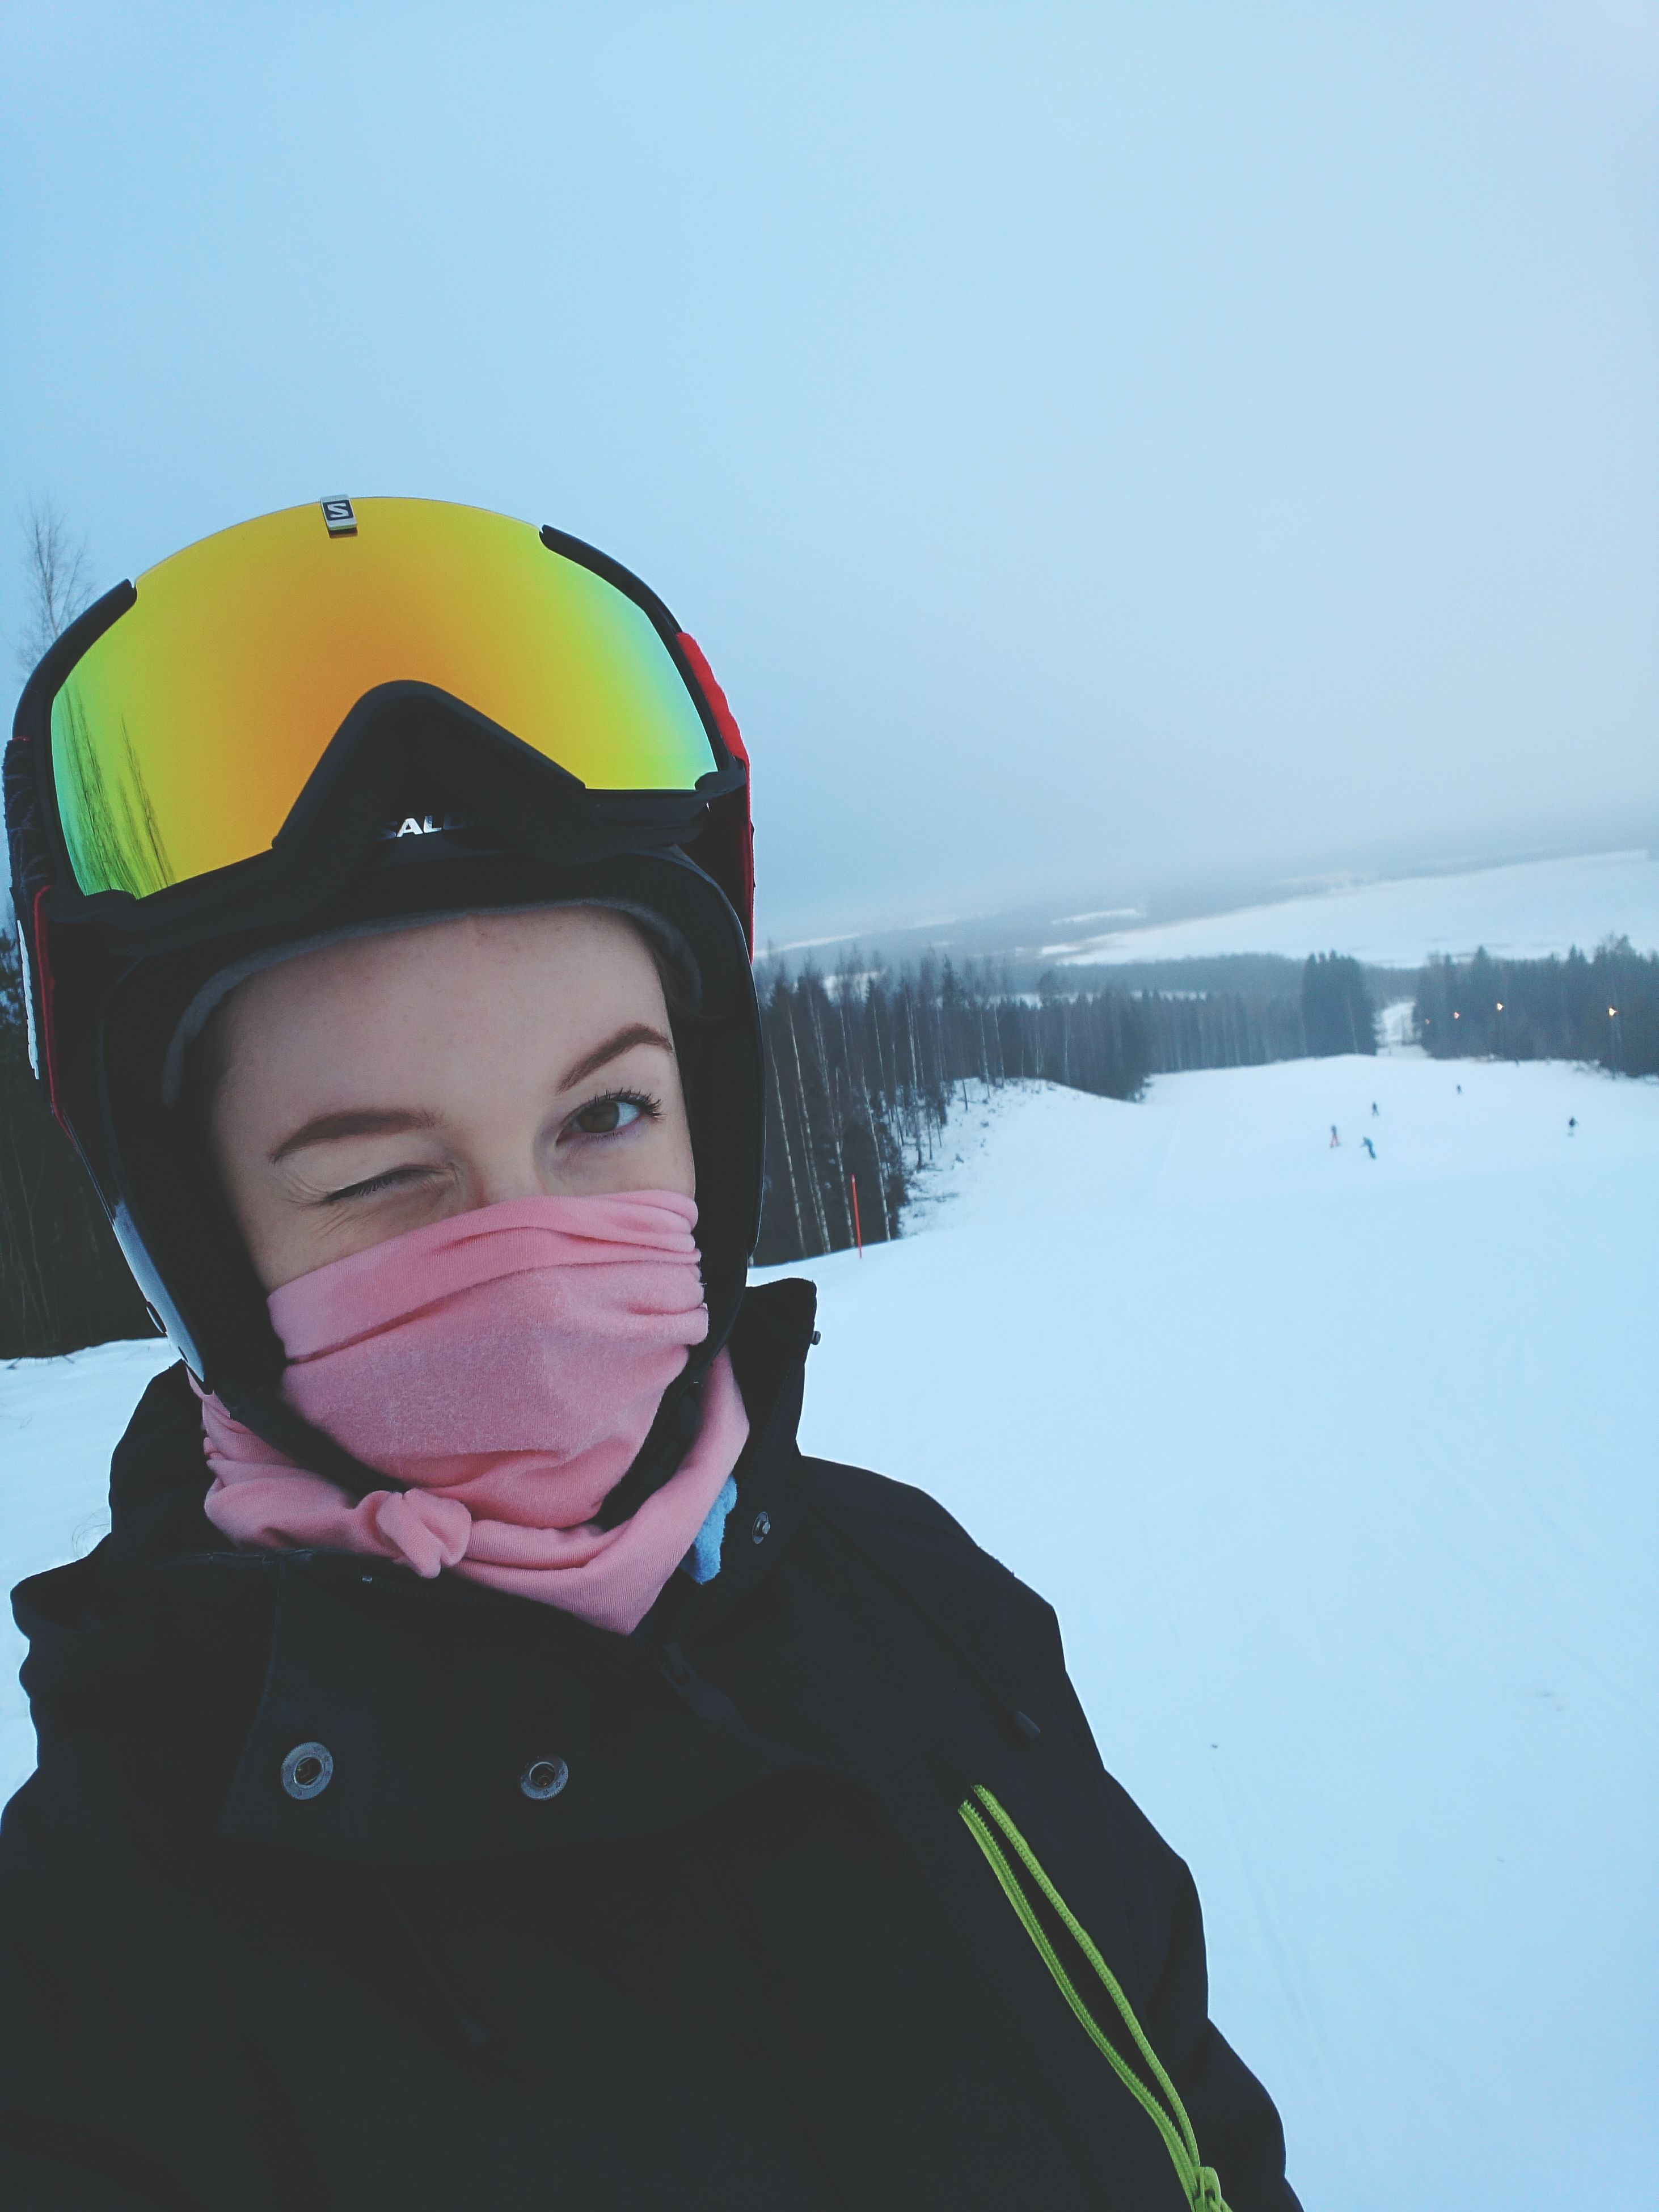 winter, headshot, snow, warm clothing, one person, front view, lifestyles, leisure activity, day, adults only, people, cold temperature, adult, close-up, real people, water, young adult, human body part, outdoors, only women, snowboarding, sky